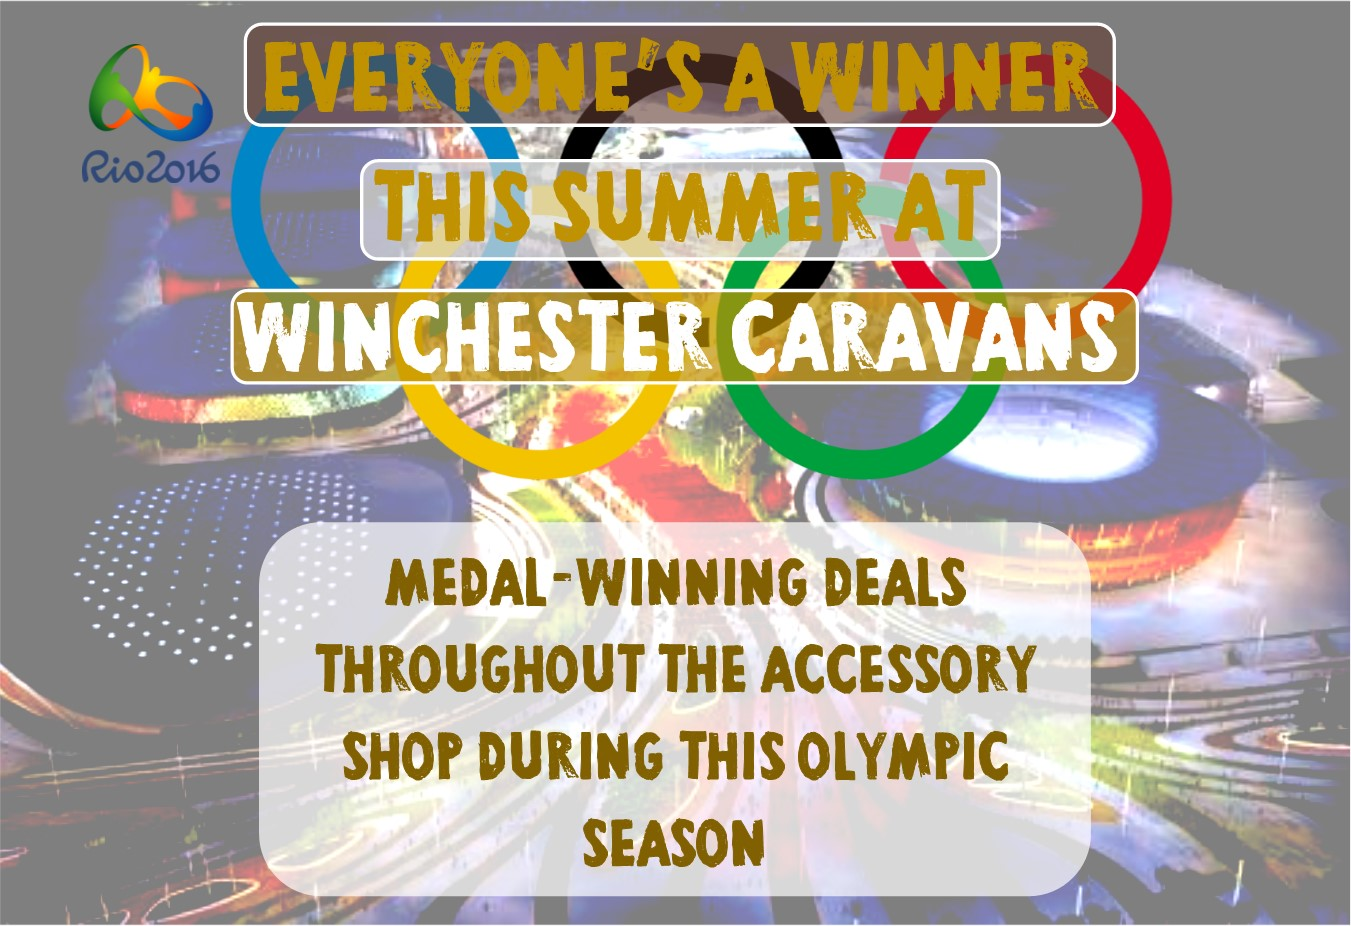 Everyone's a winner this summer at Winchester Caravans